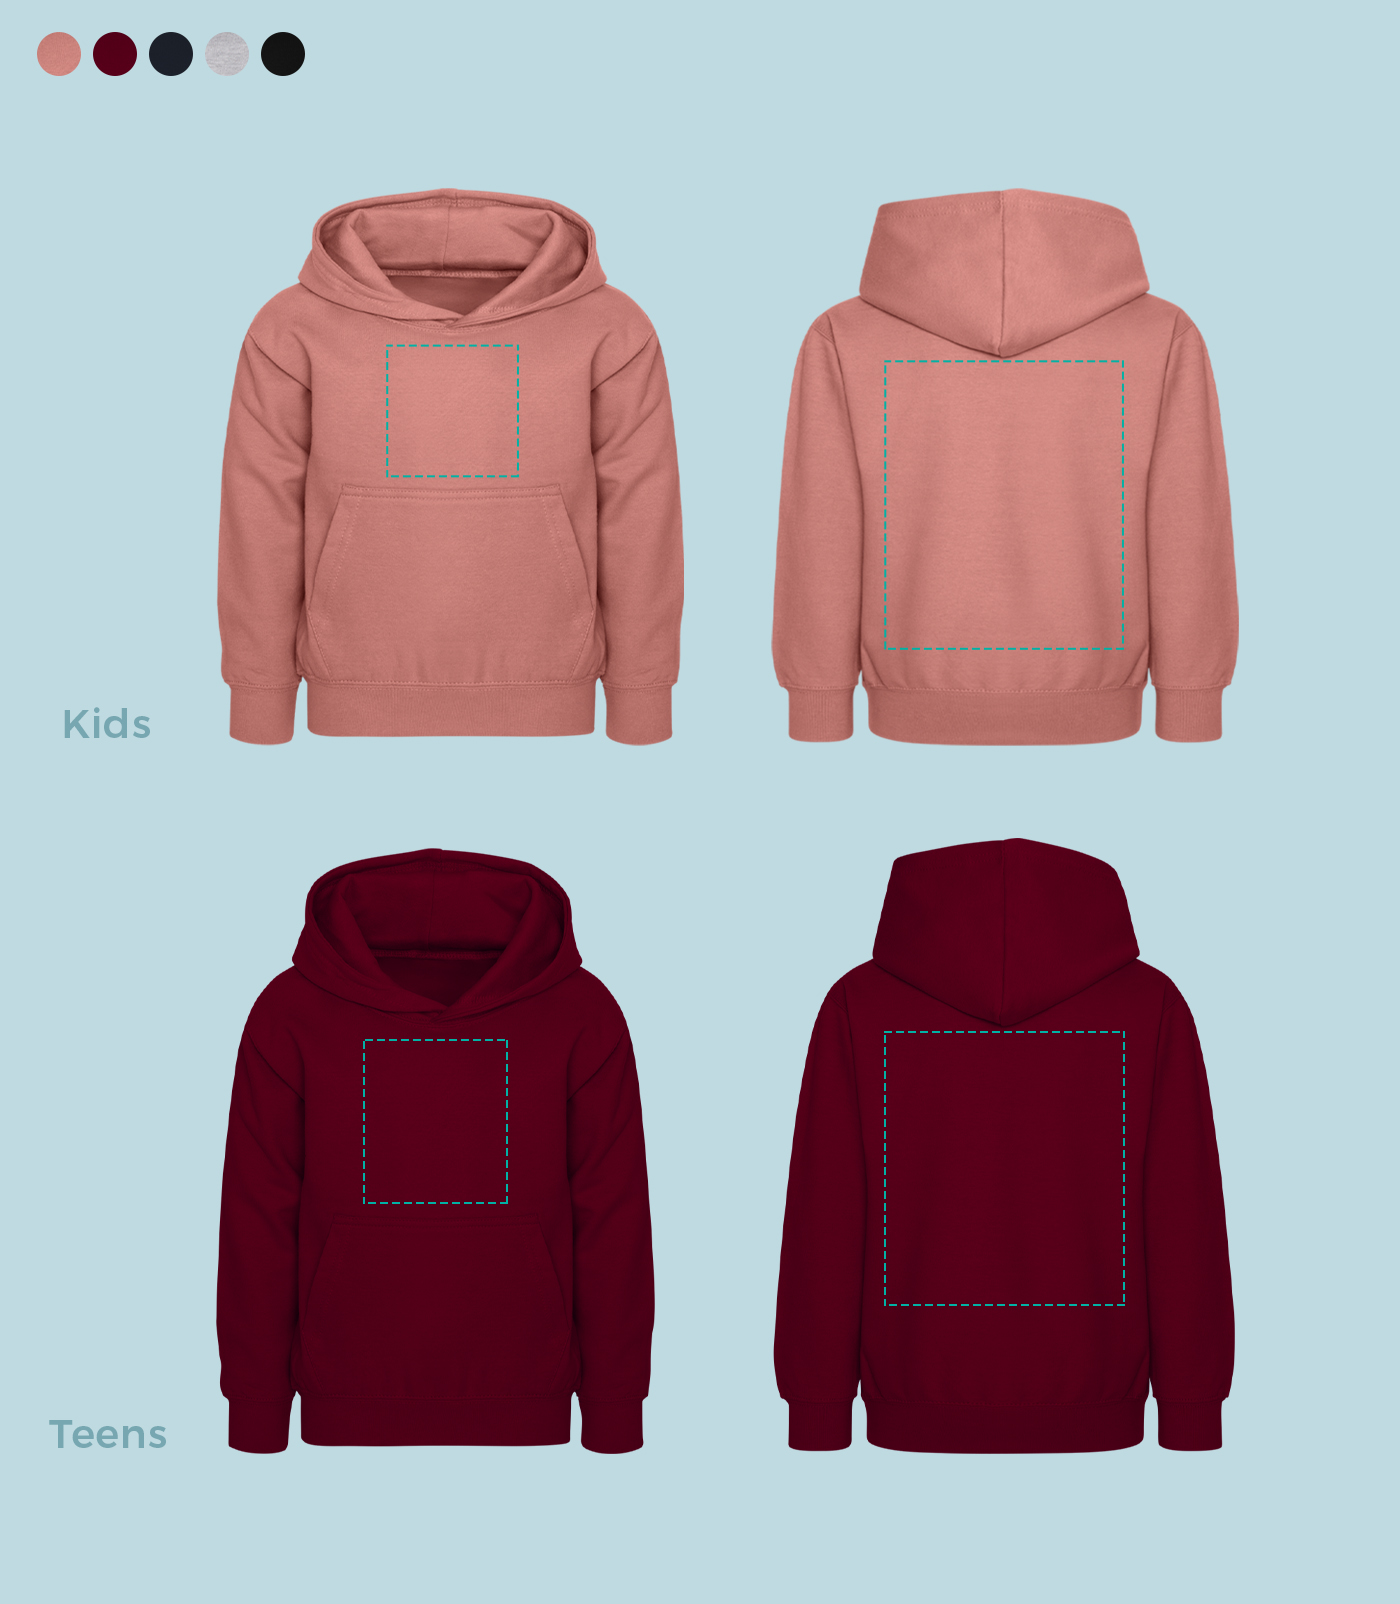 The Newest Hoodie for Kids & Teens